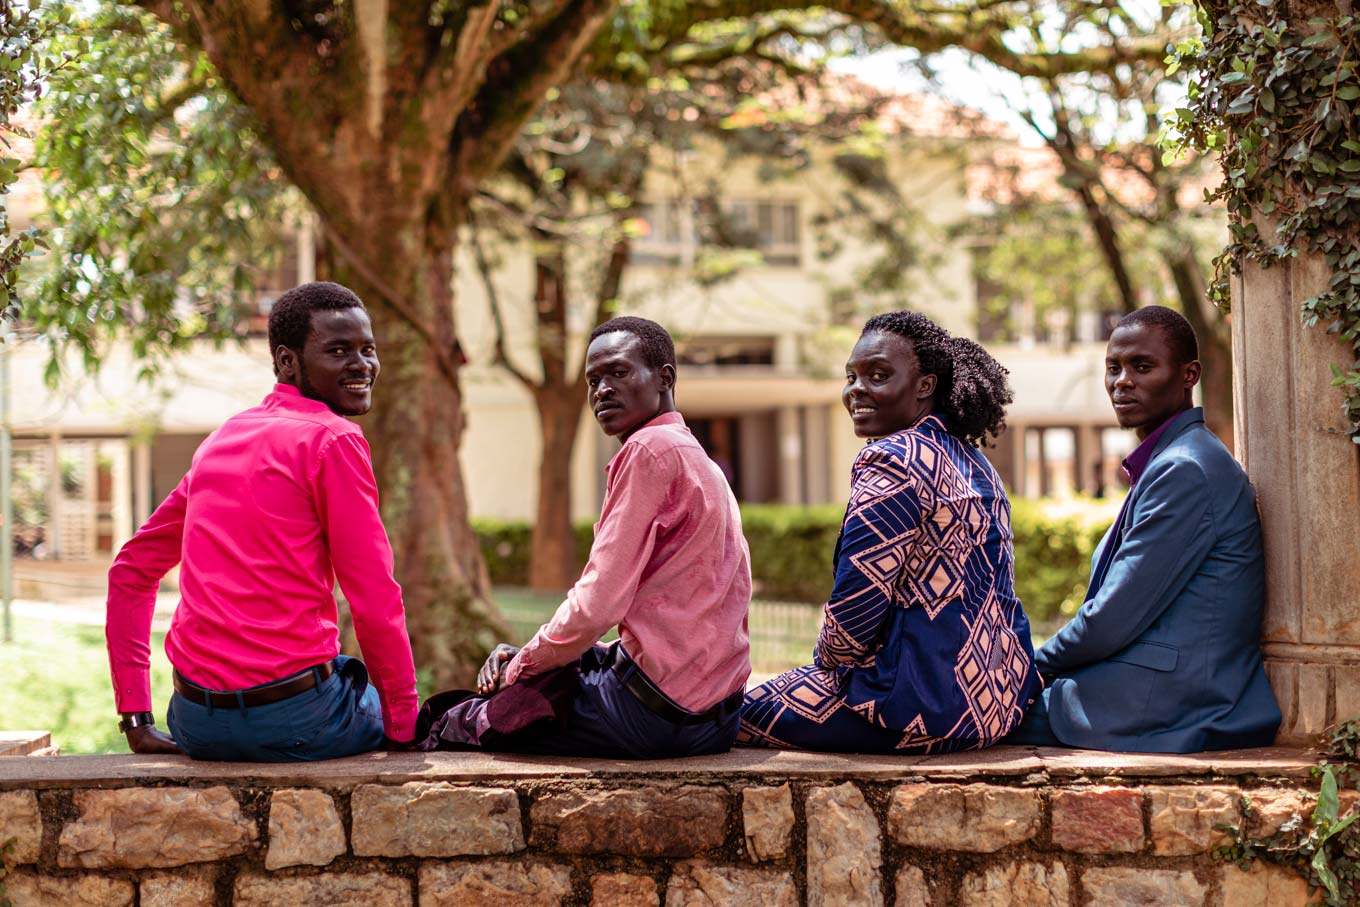 Refugee students at Makerere University in Kampala, Uganda. STAR's work forms part of a global push to improve access to secondary and tertiary education for refugees.